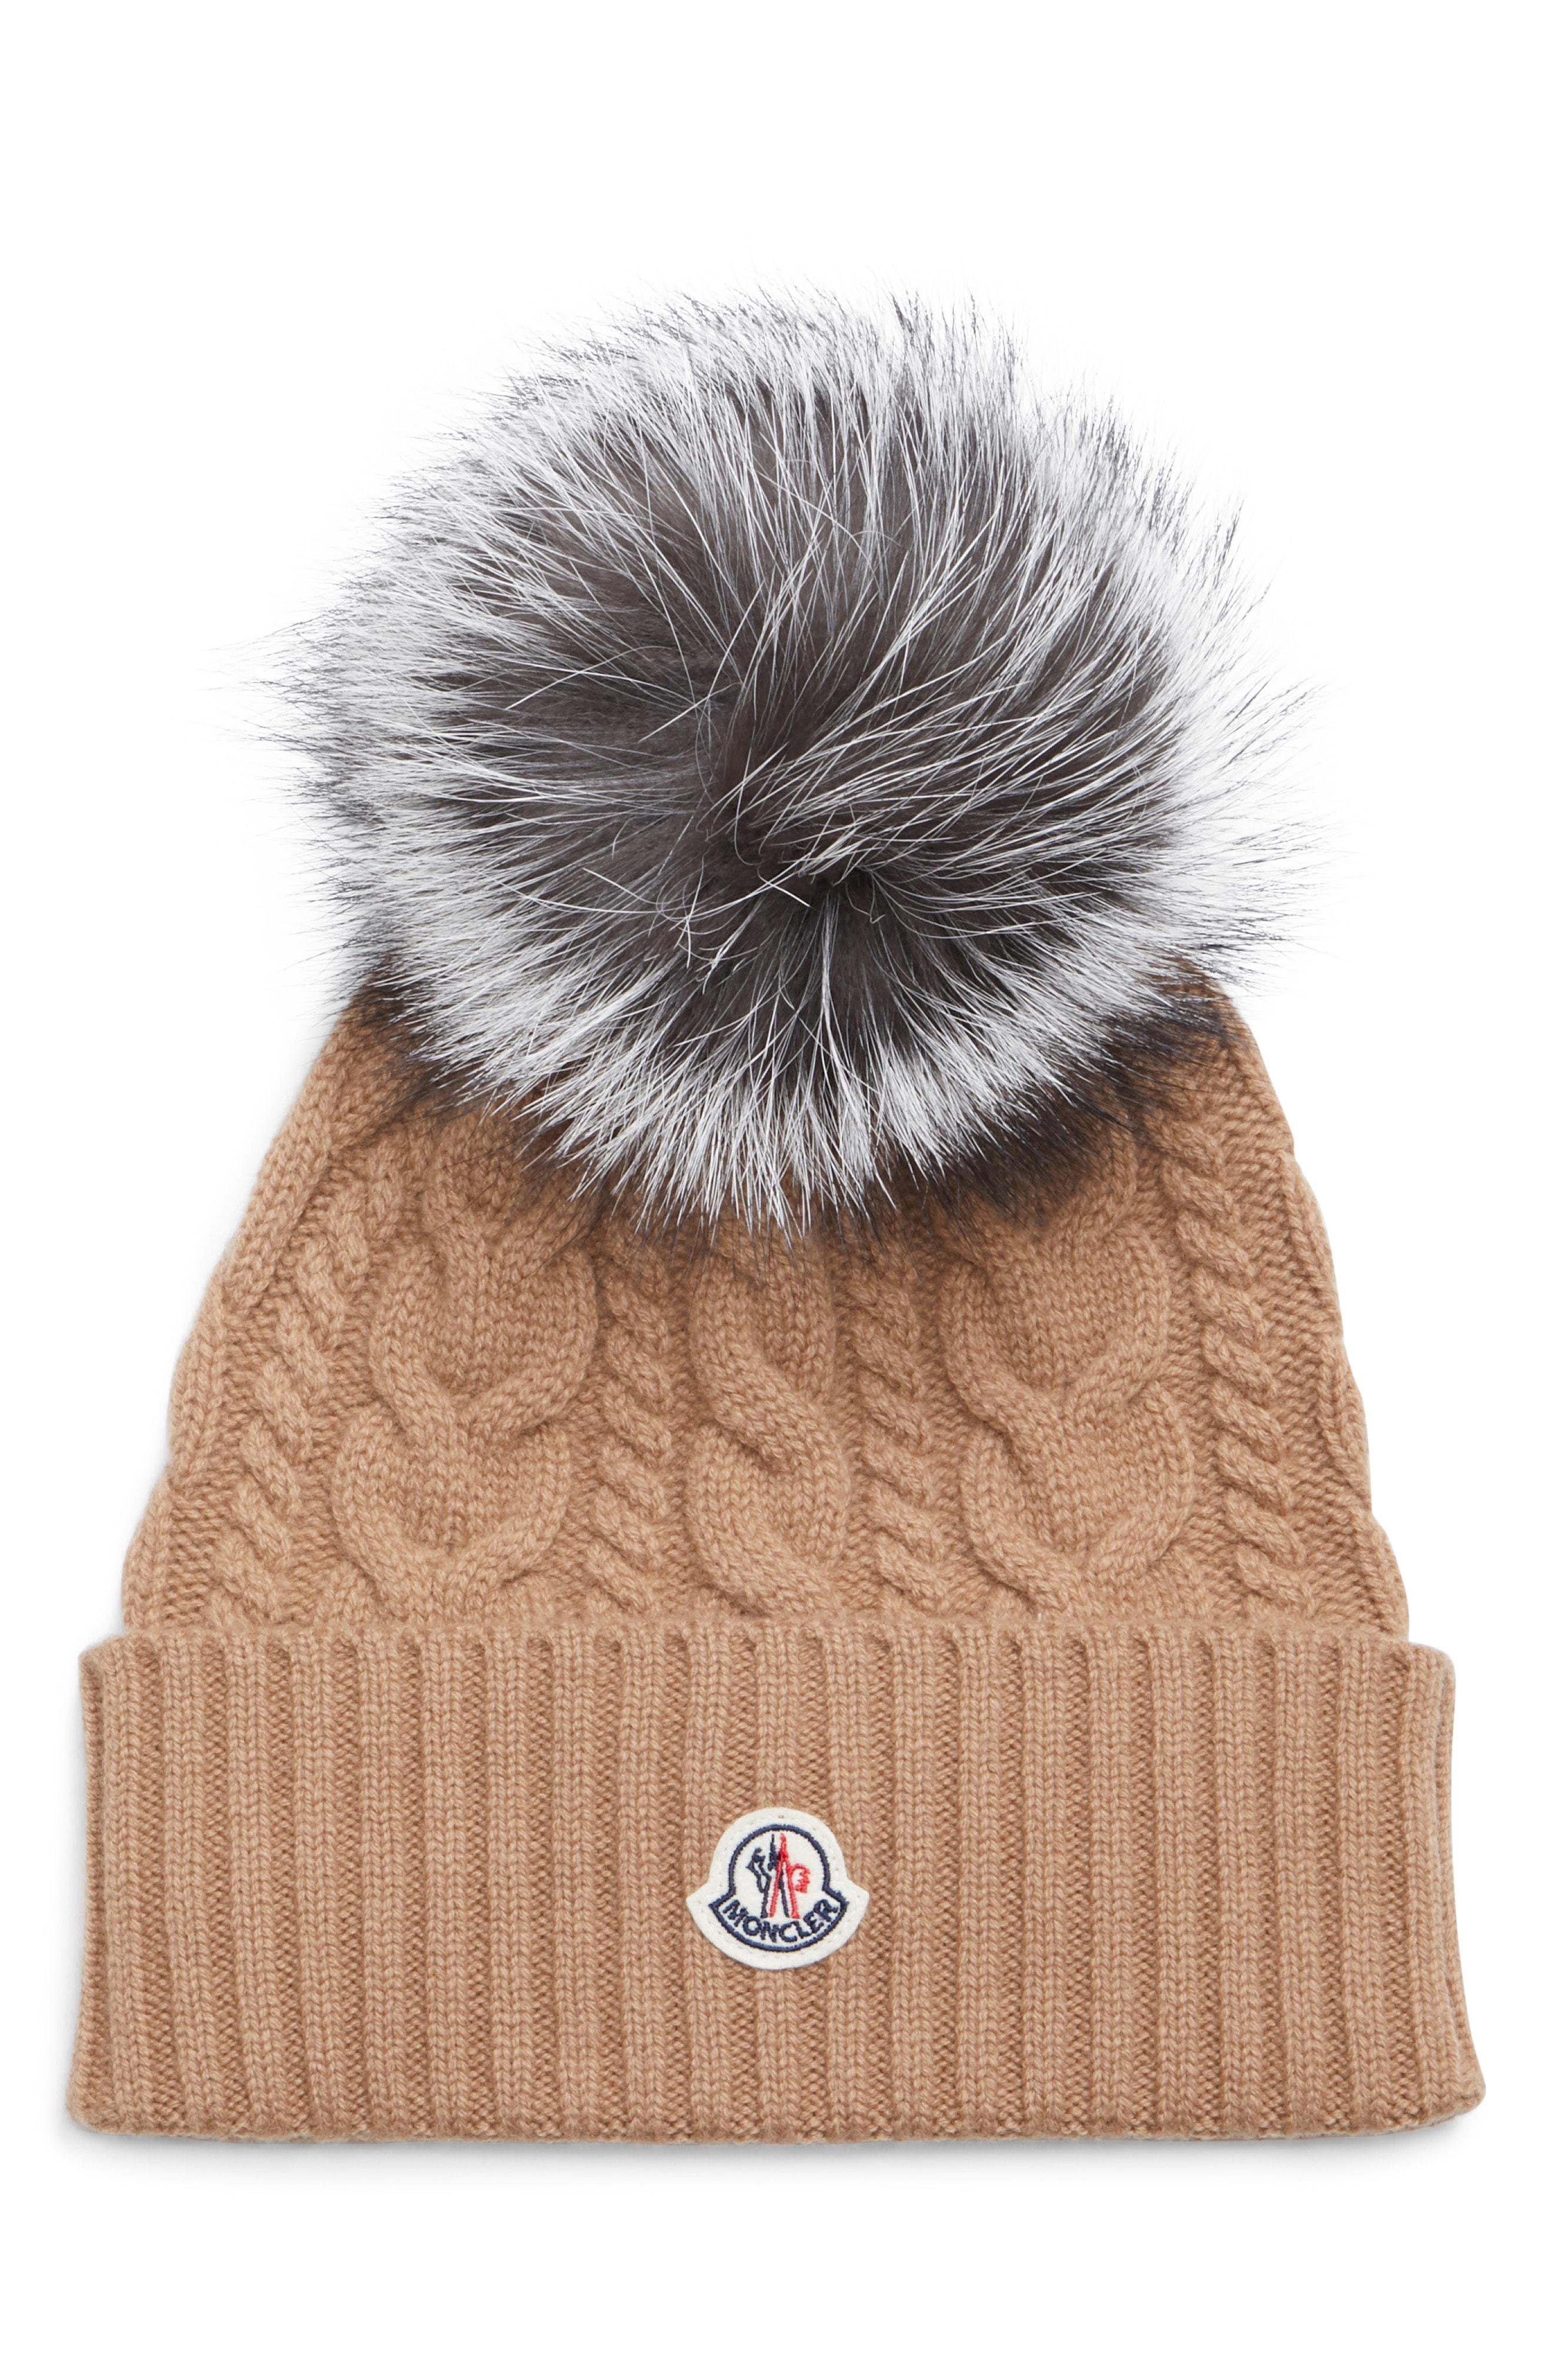 98c15b09ebbf7 Lyst - Moncler Cable Knit Beanie With Genuine Fox Fur Pom in Gray